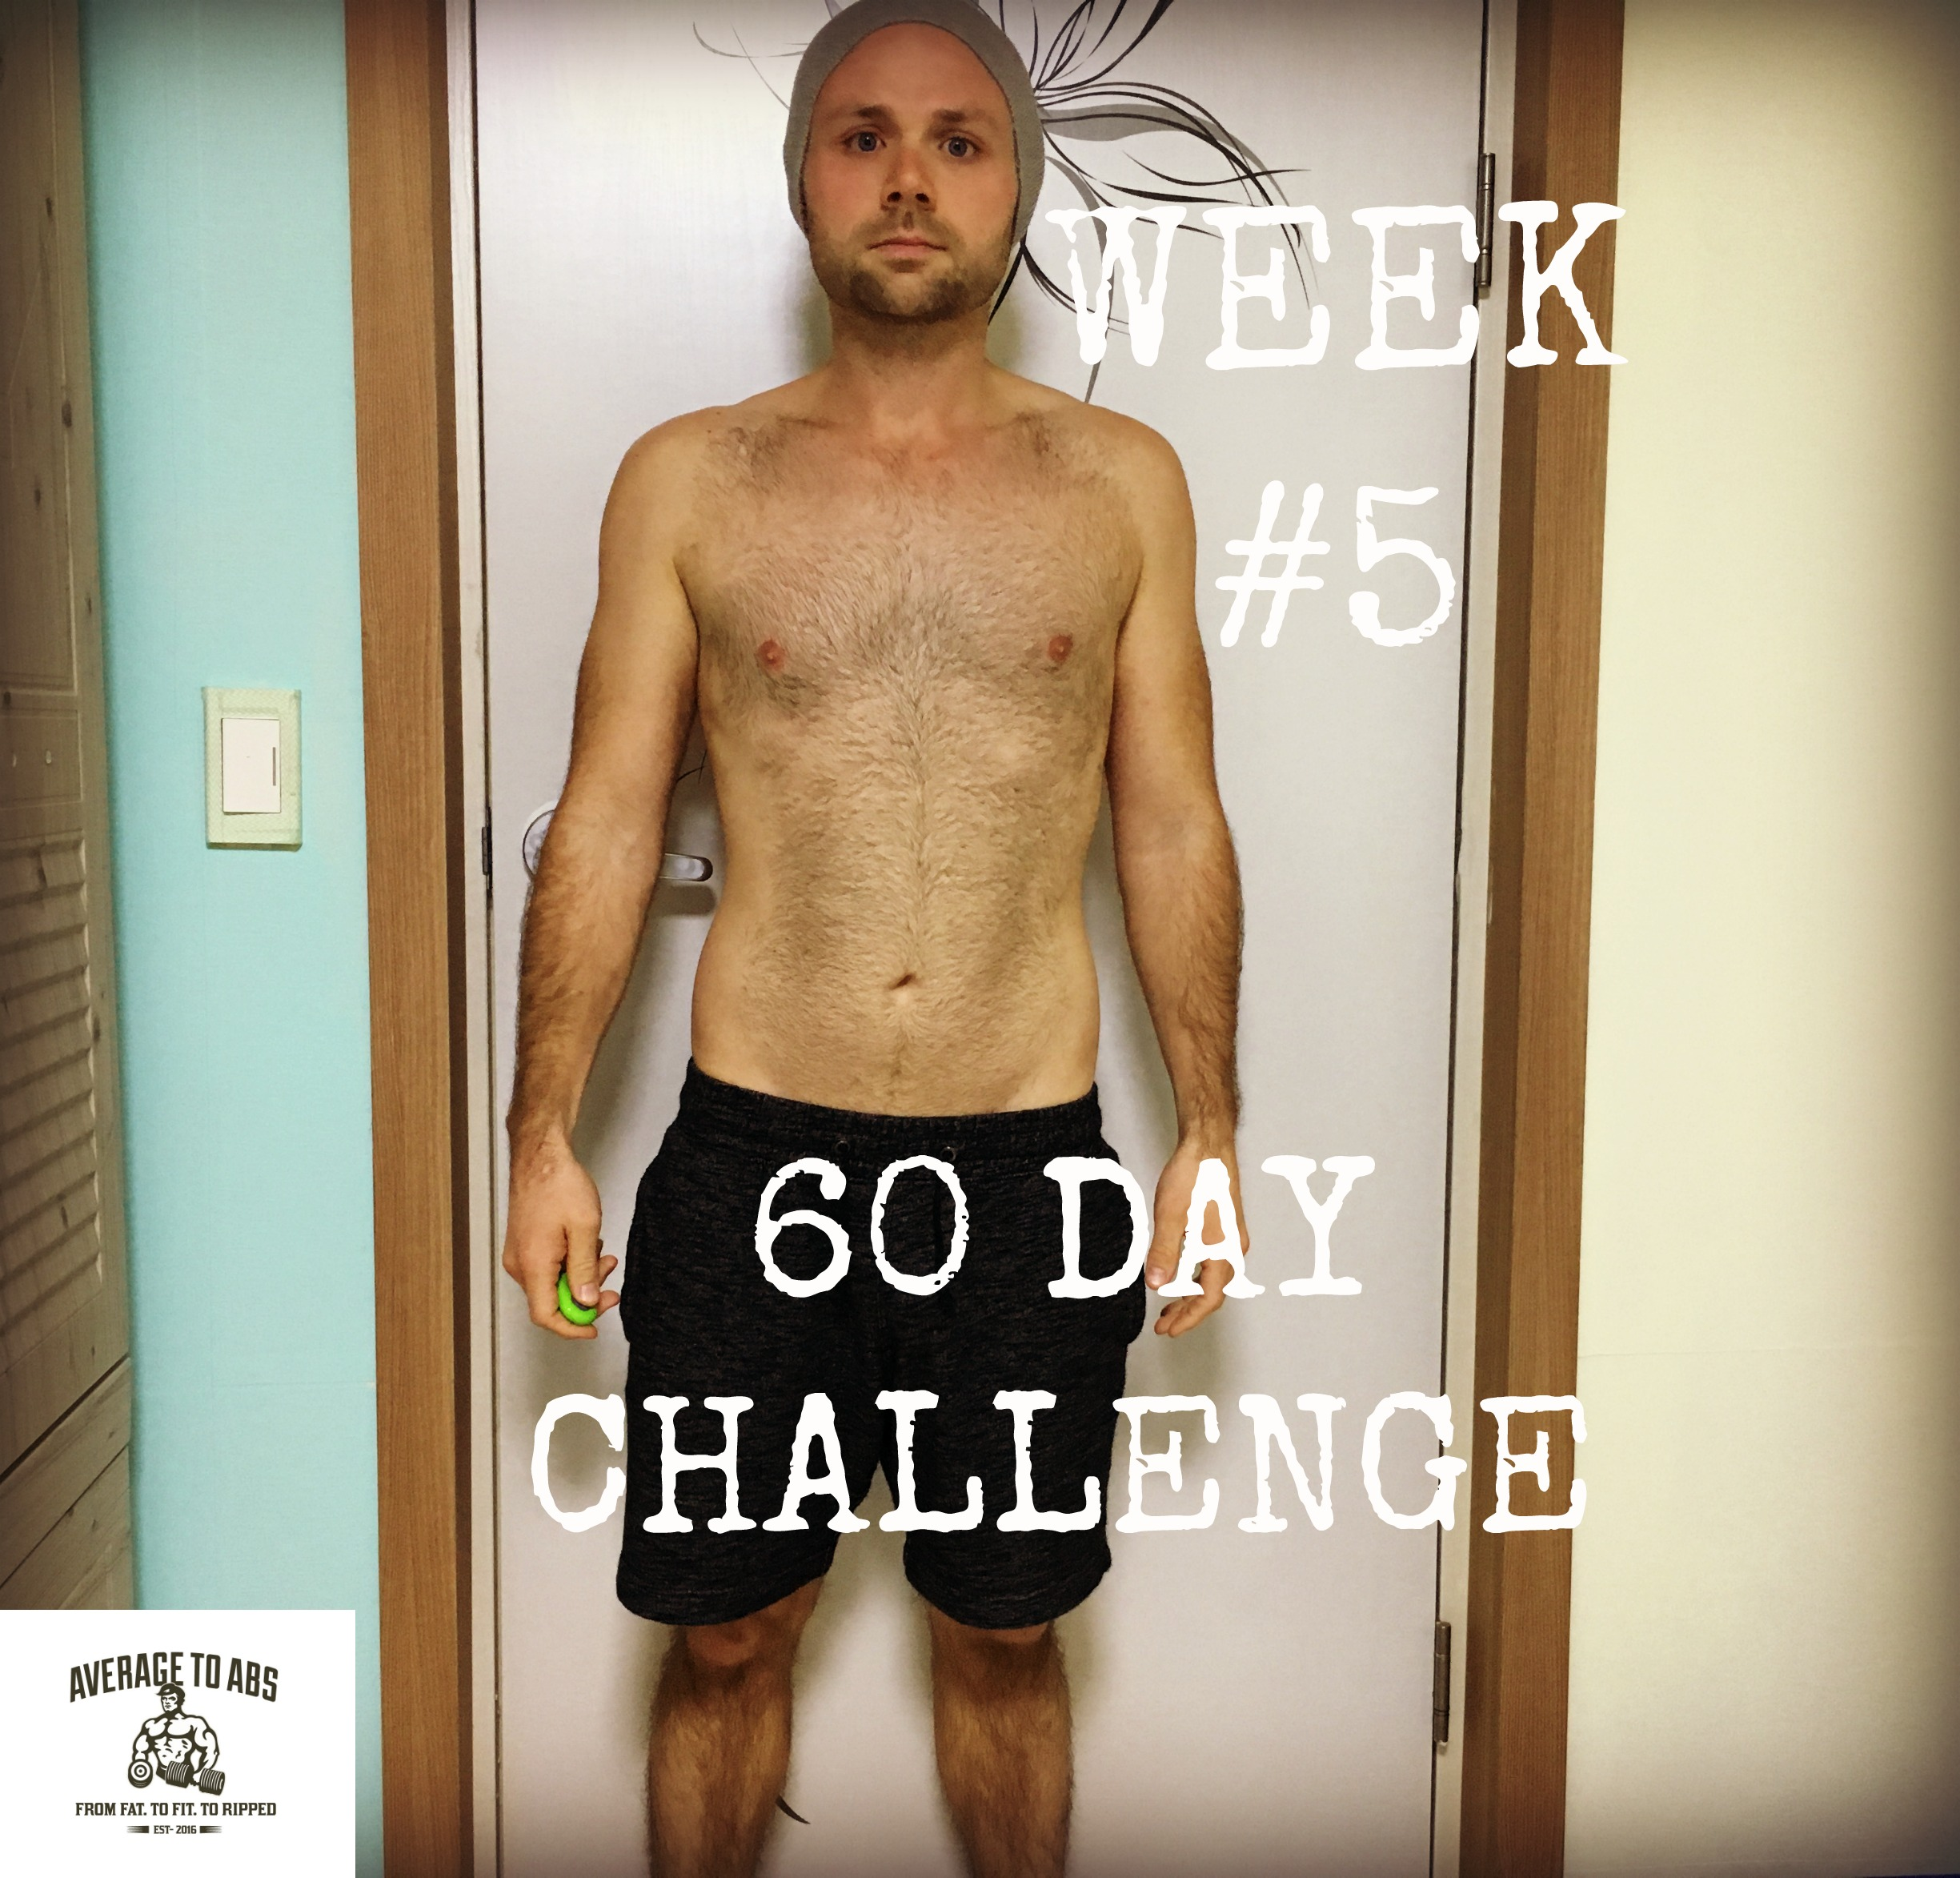 60 Day Challange Week 5